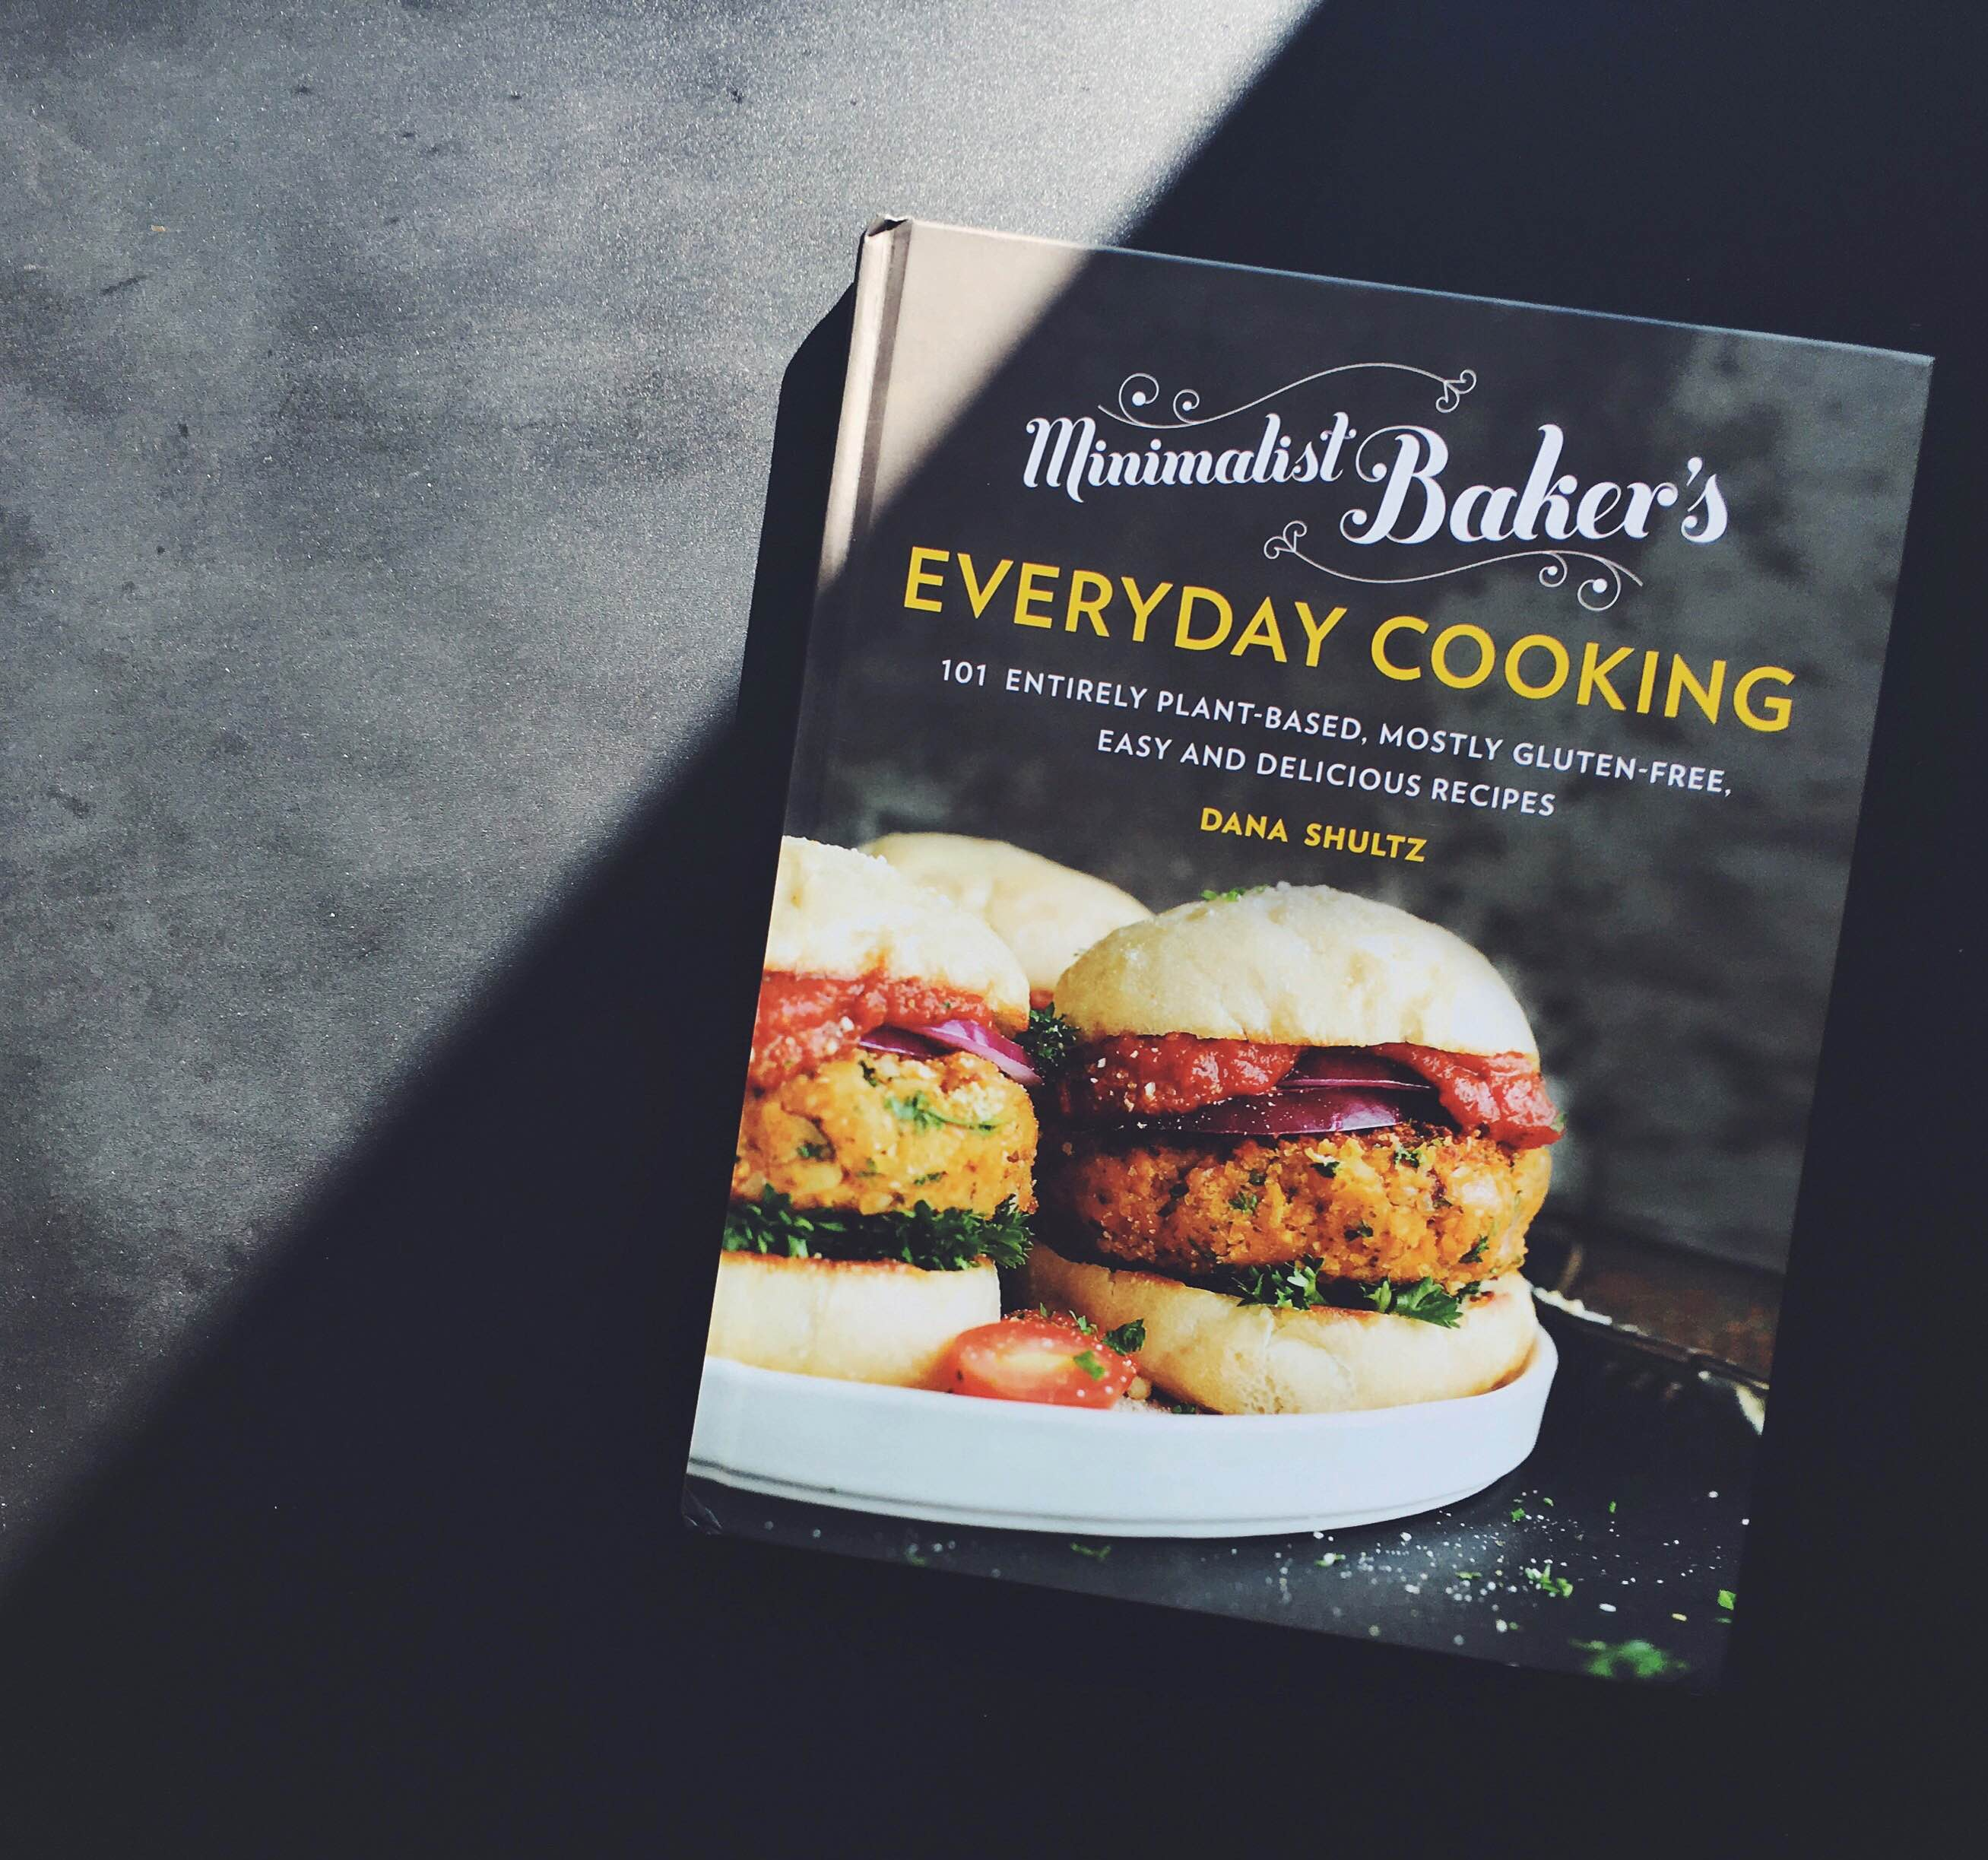 Minimalist Baker's Everyday Cooking Cookbook